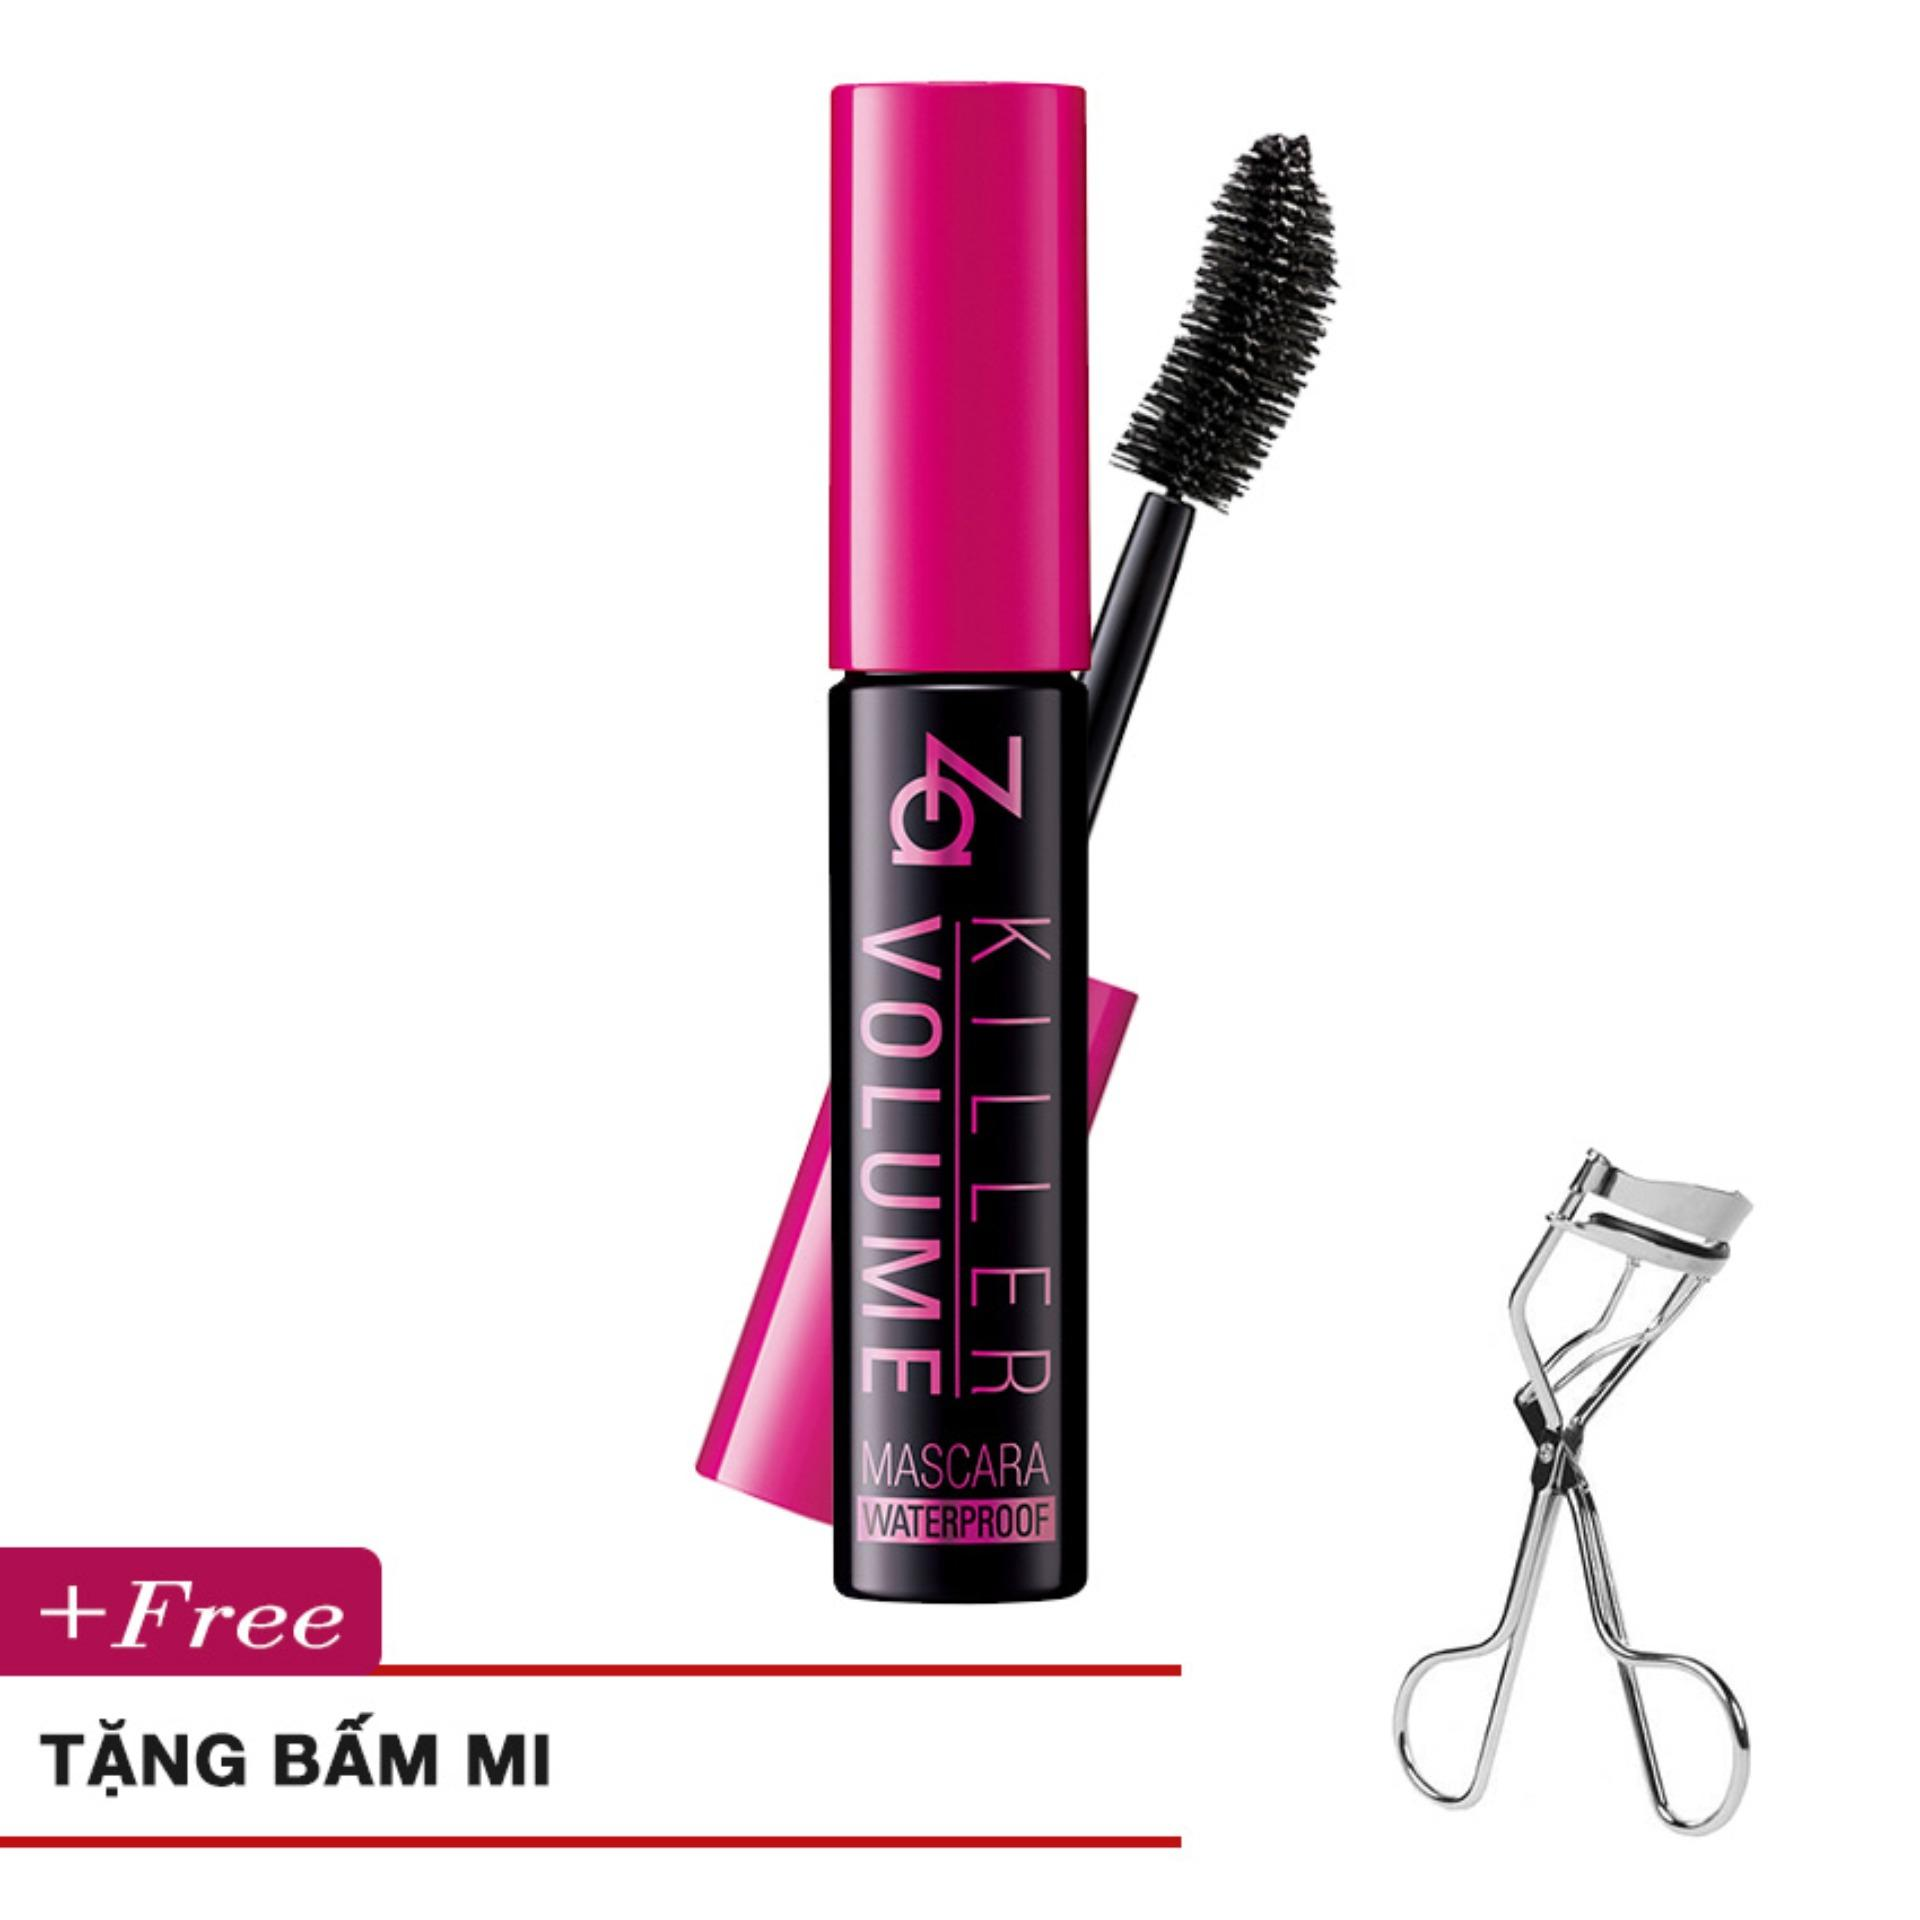 Cửa Hàng Bán Mascara Lam Dai Va Day Mi Killer Volume Mascara N01 Real Black 9G